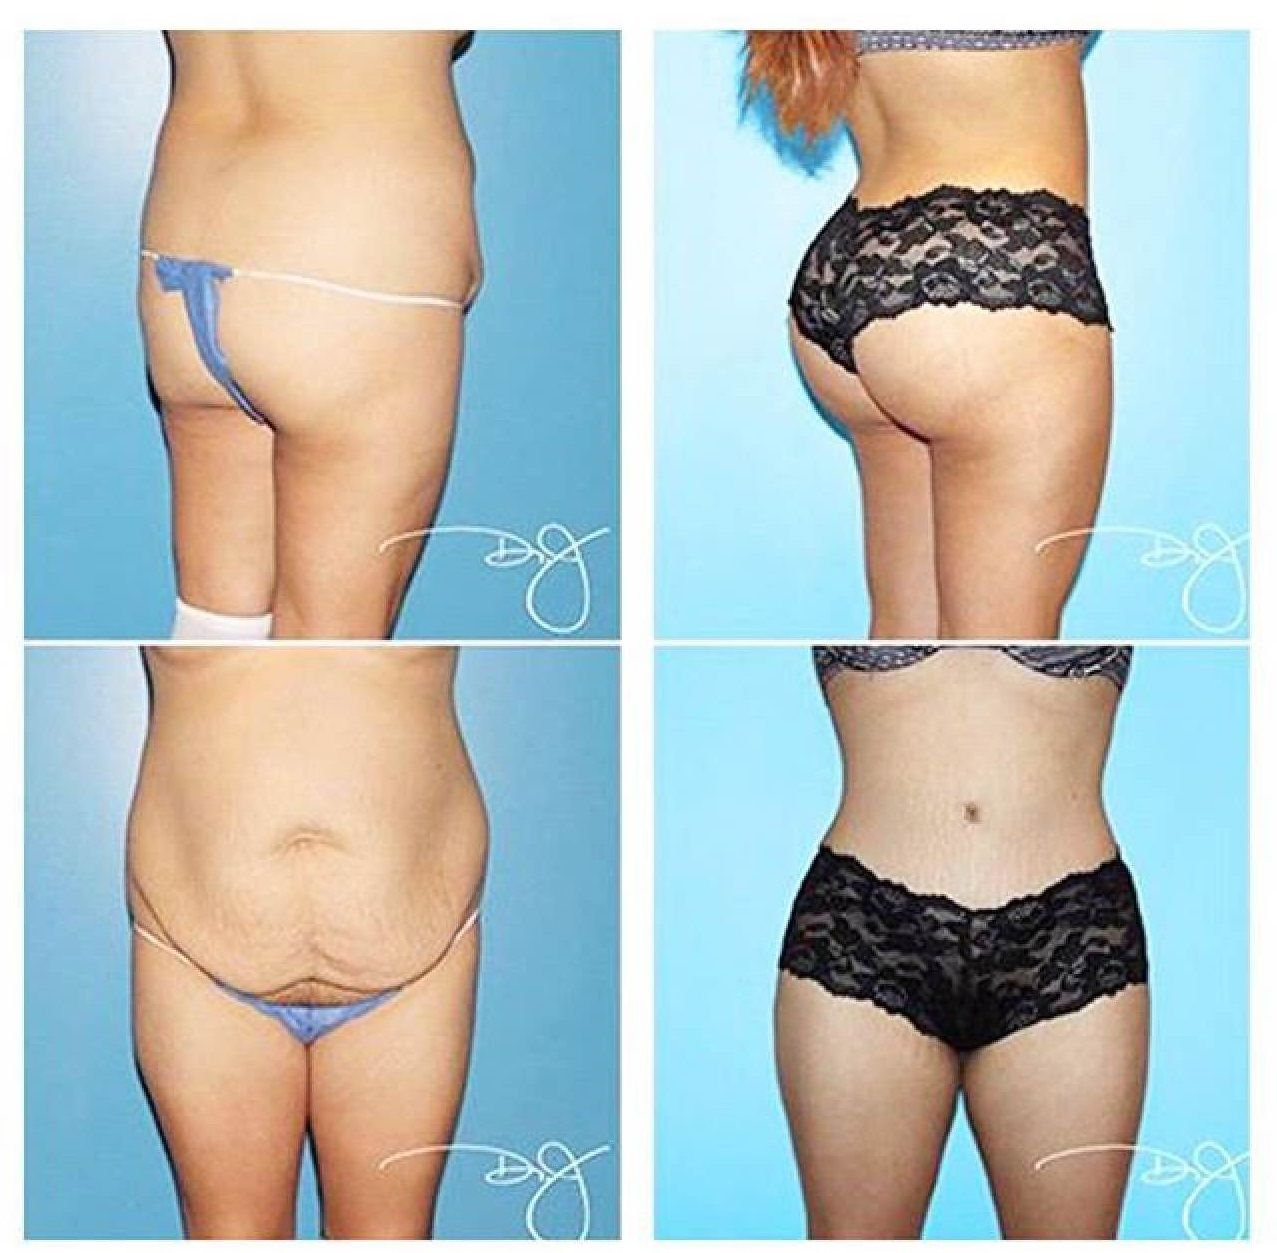 How to lose weight 20 lbs in 30 days